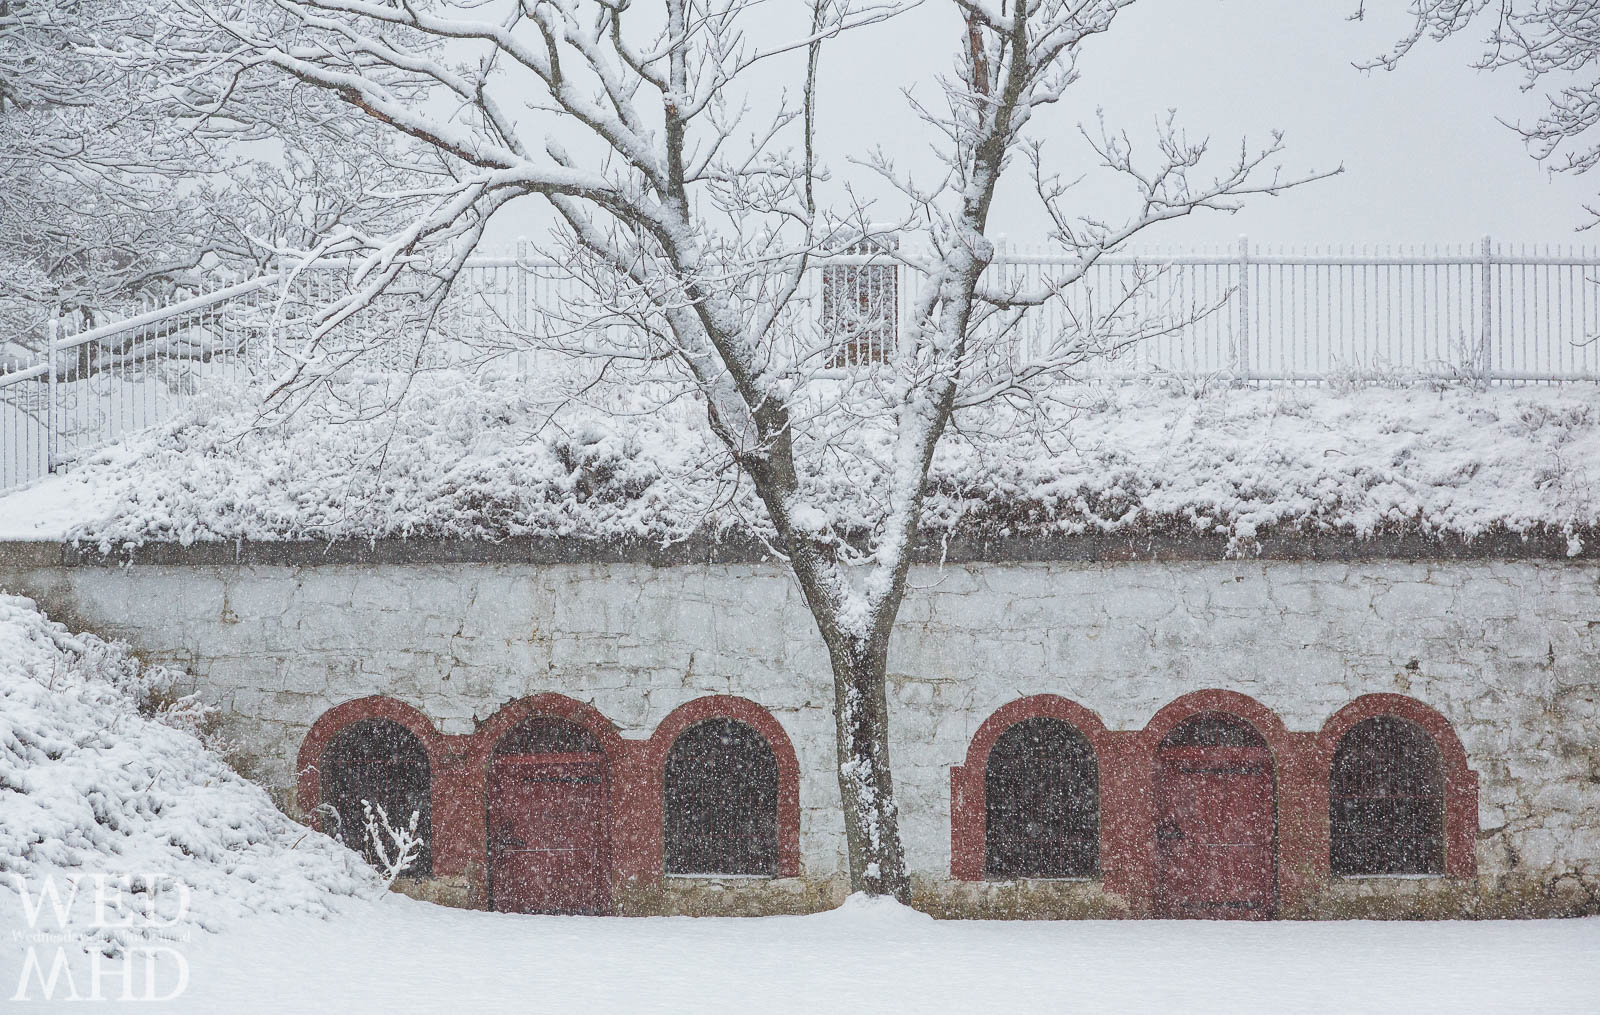 snow falls over red doors at Fort Sewall